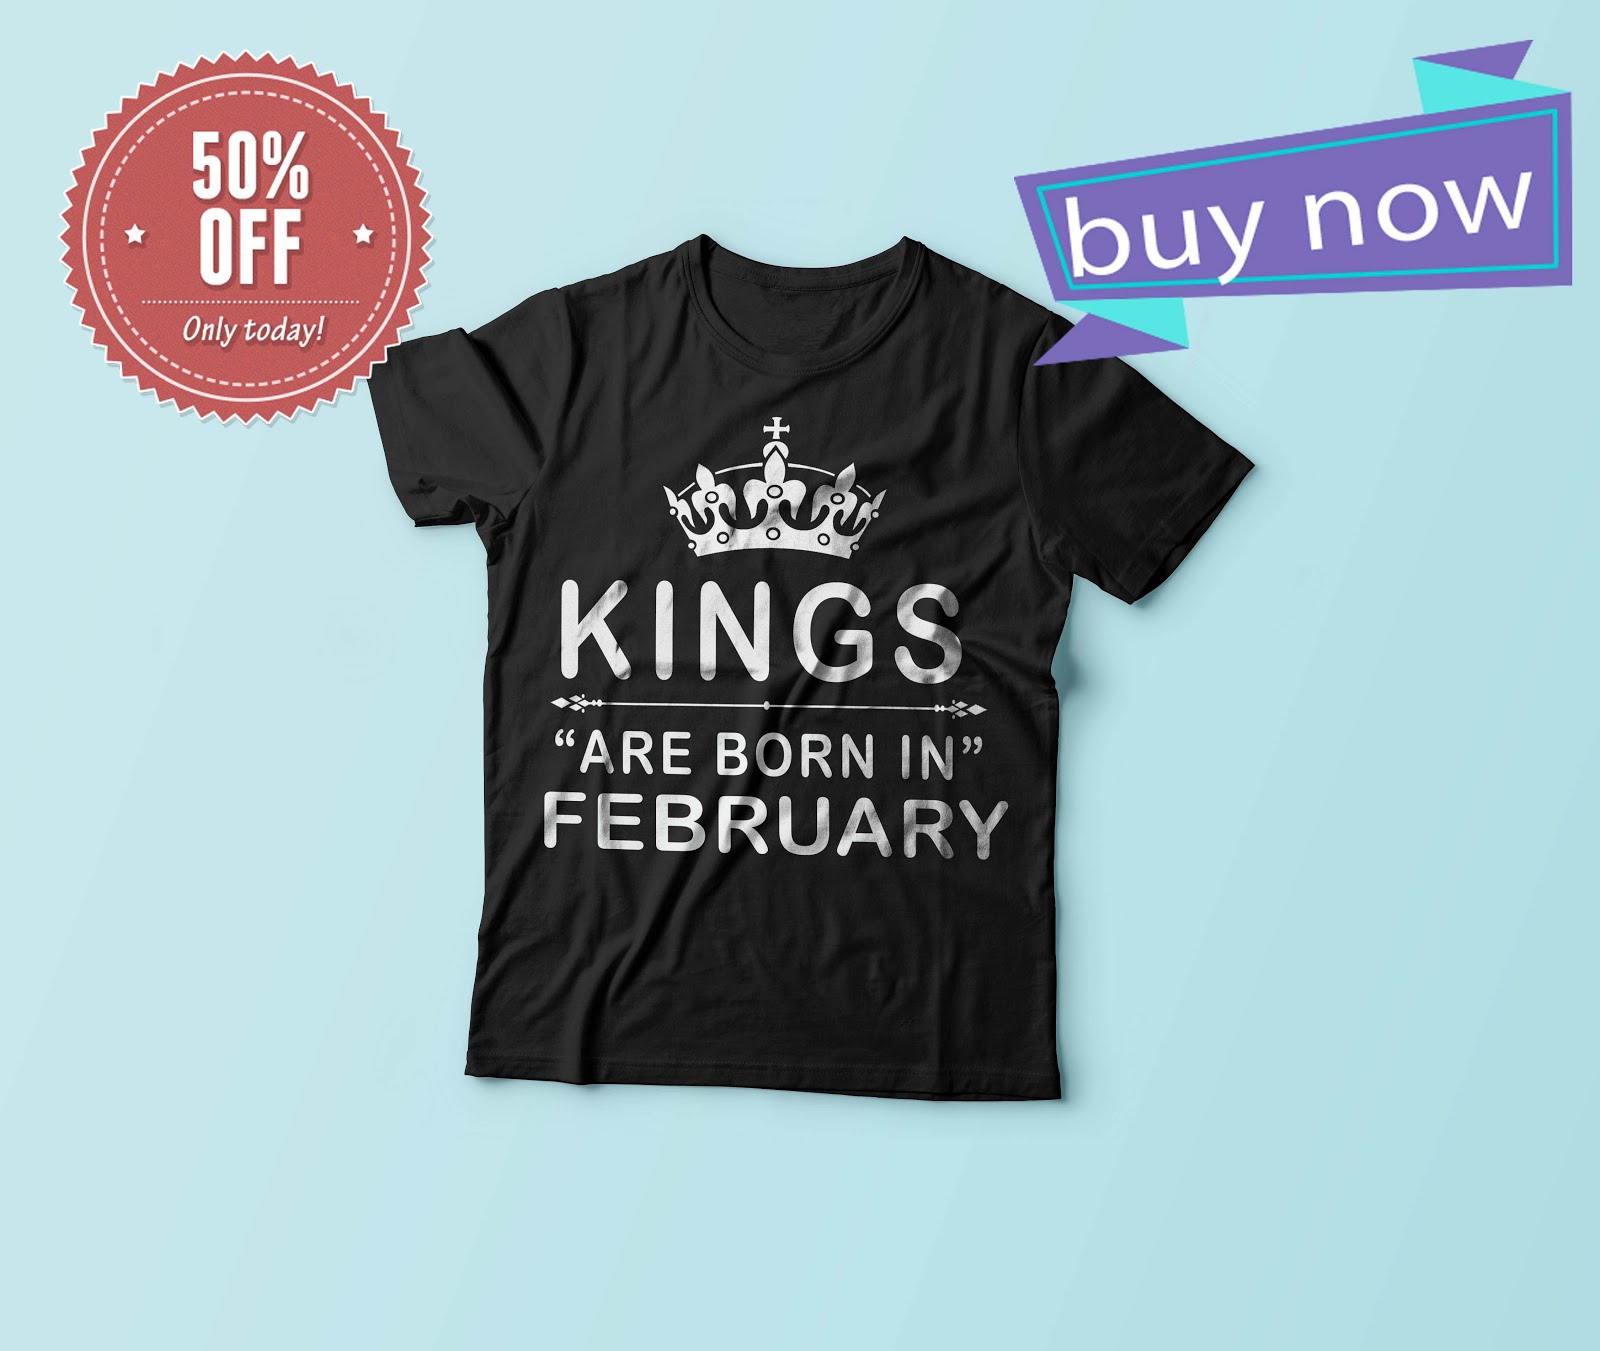 Kings Tees